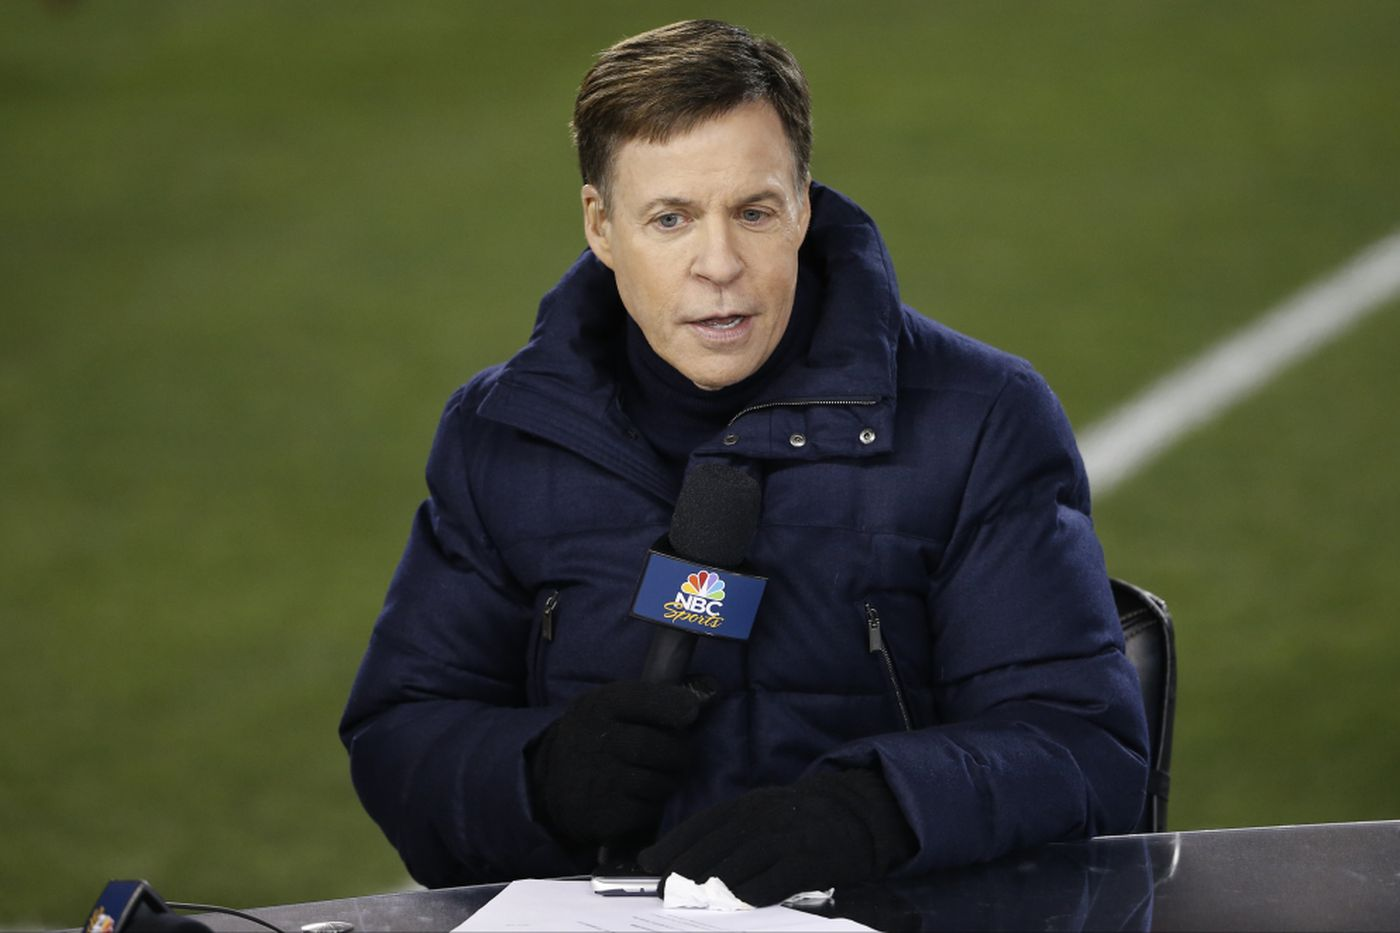 Bob Costas Is Reportedly In Talks To Exit NBC